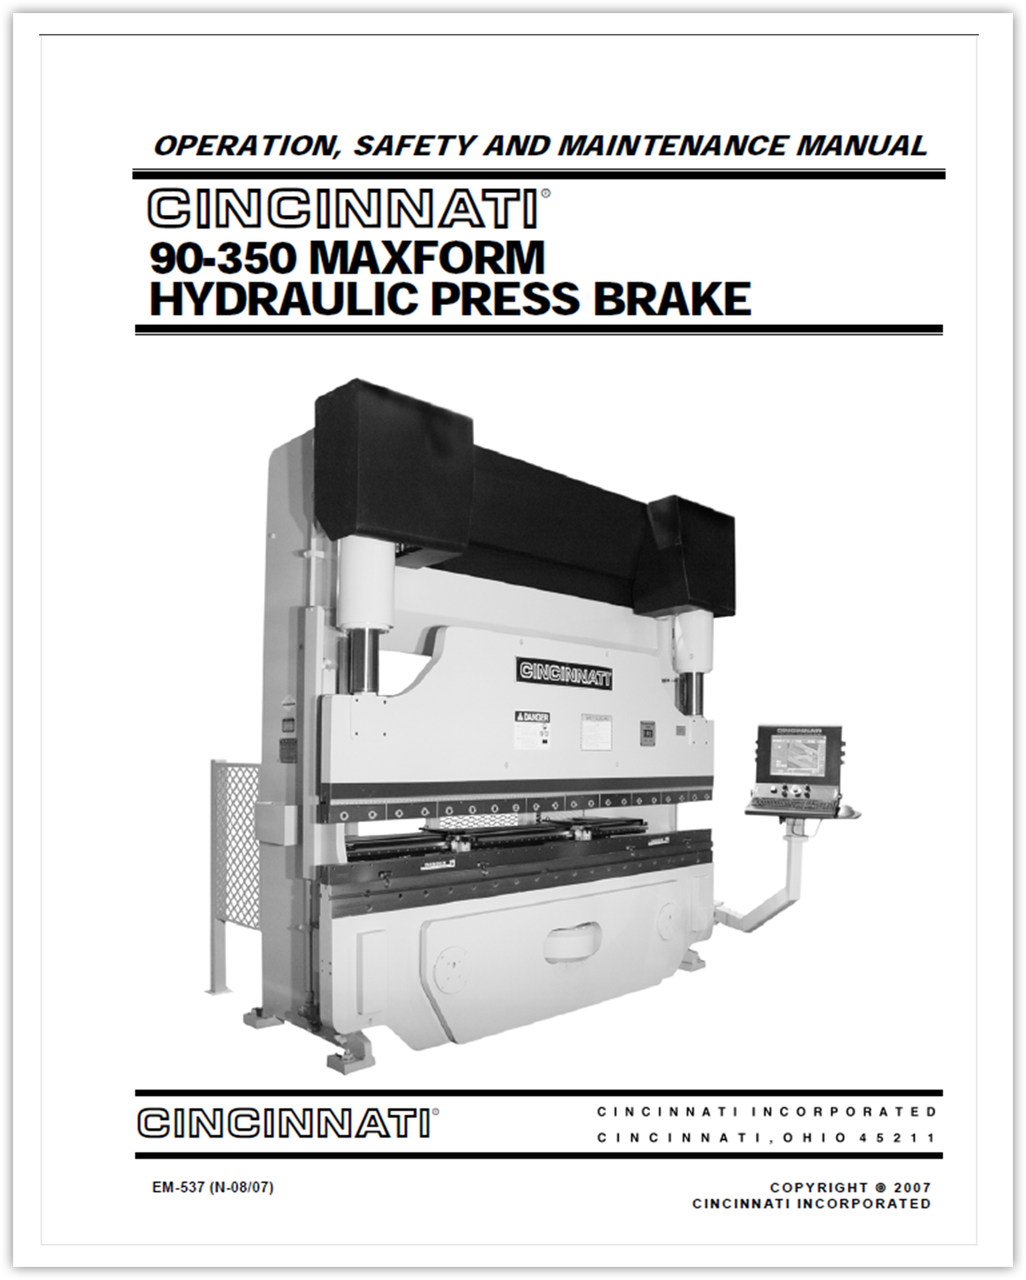 ... manual for Array - 90 350 maxform hydraulic press brake operation  safety and rh ci online e ci